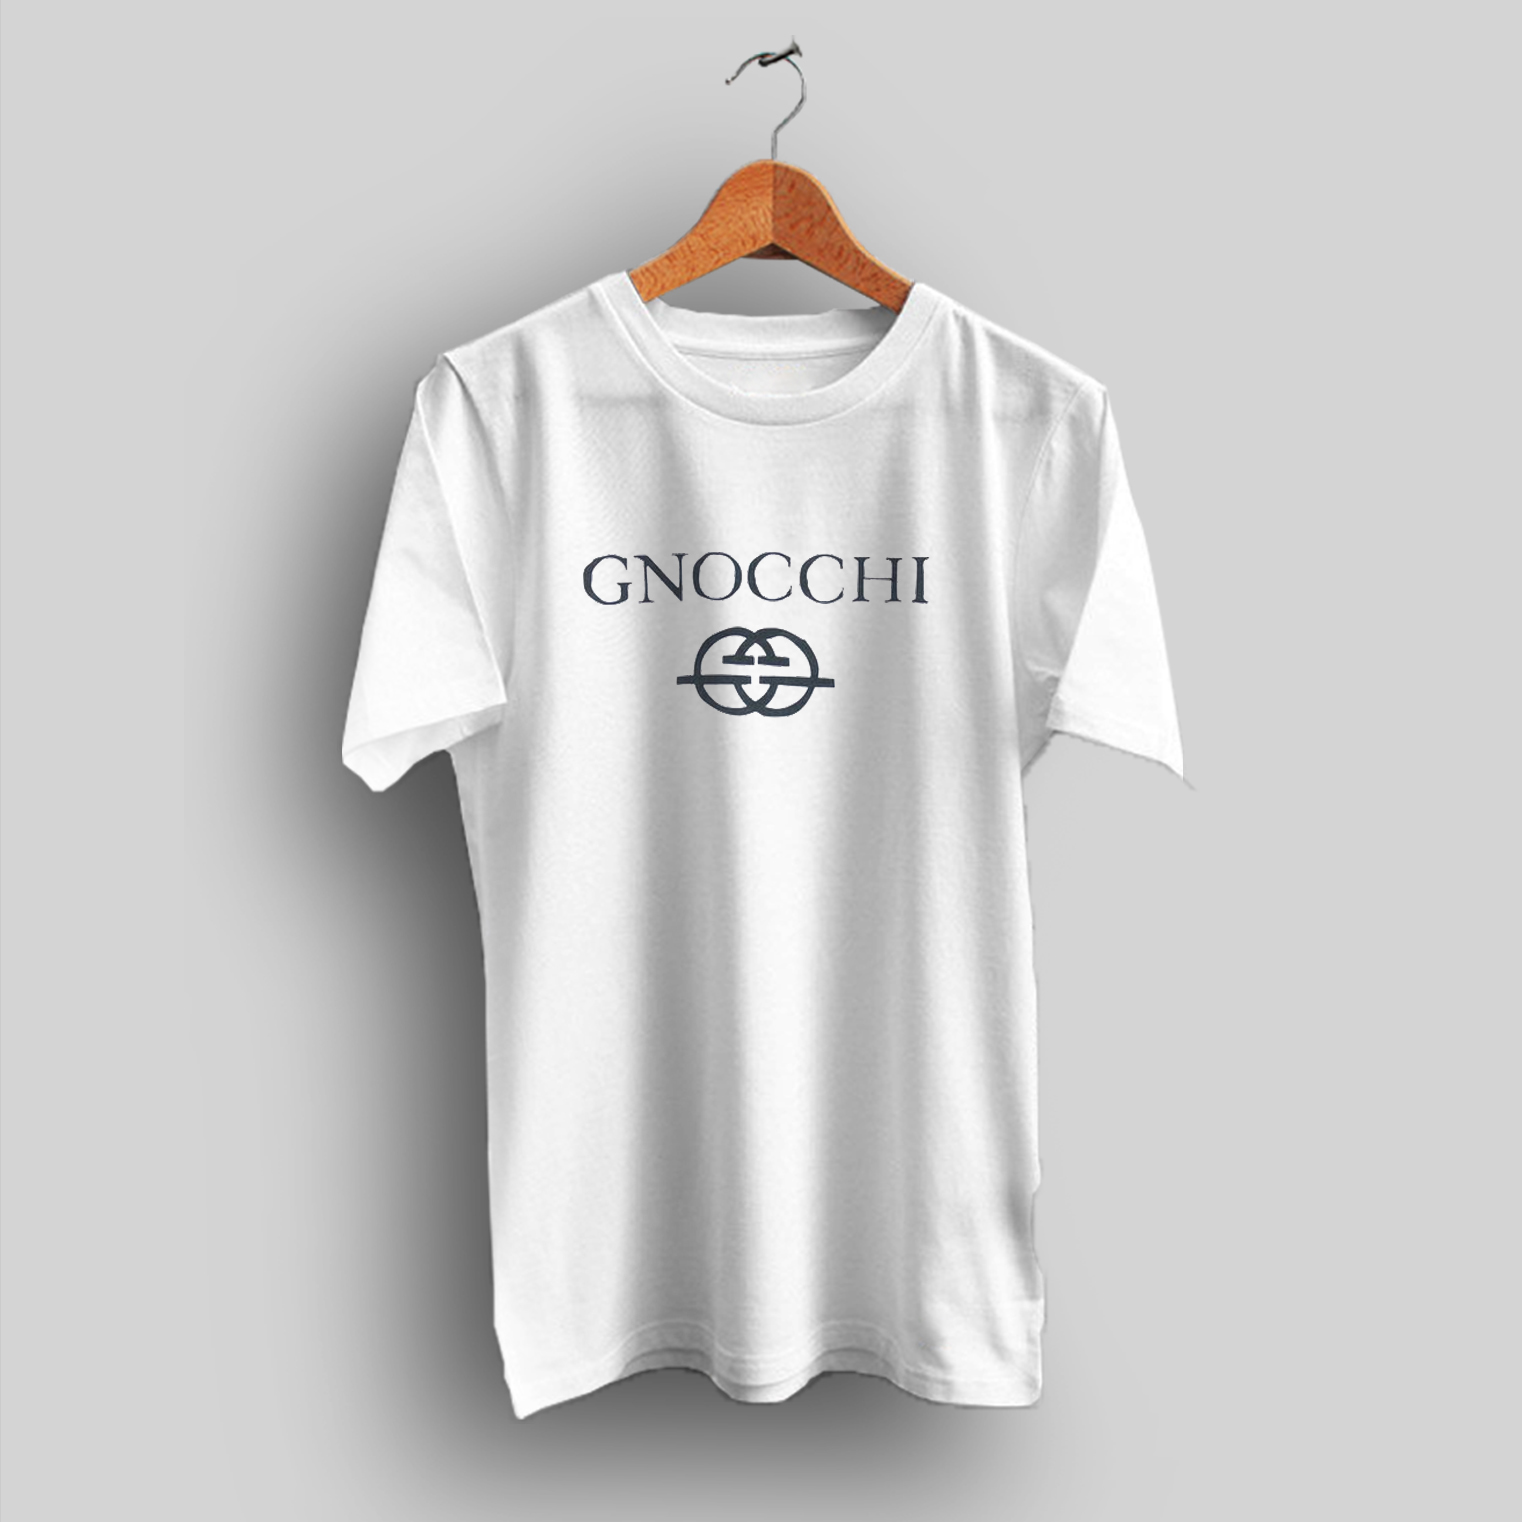 83edd4b0 Gnocchi Gucci Inspired Parody T Shirt Cheap Urban Clothing